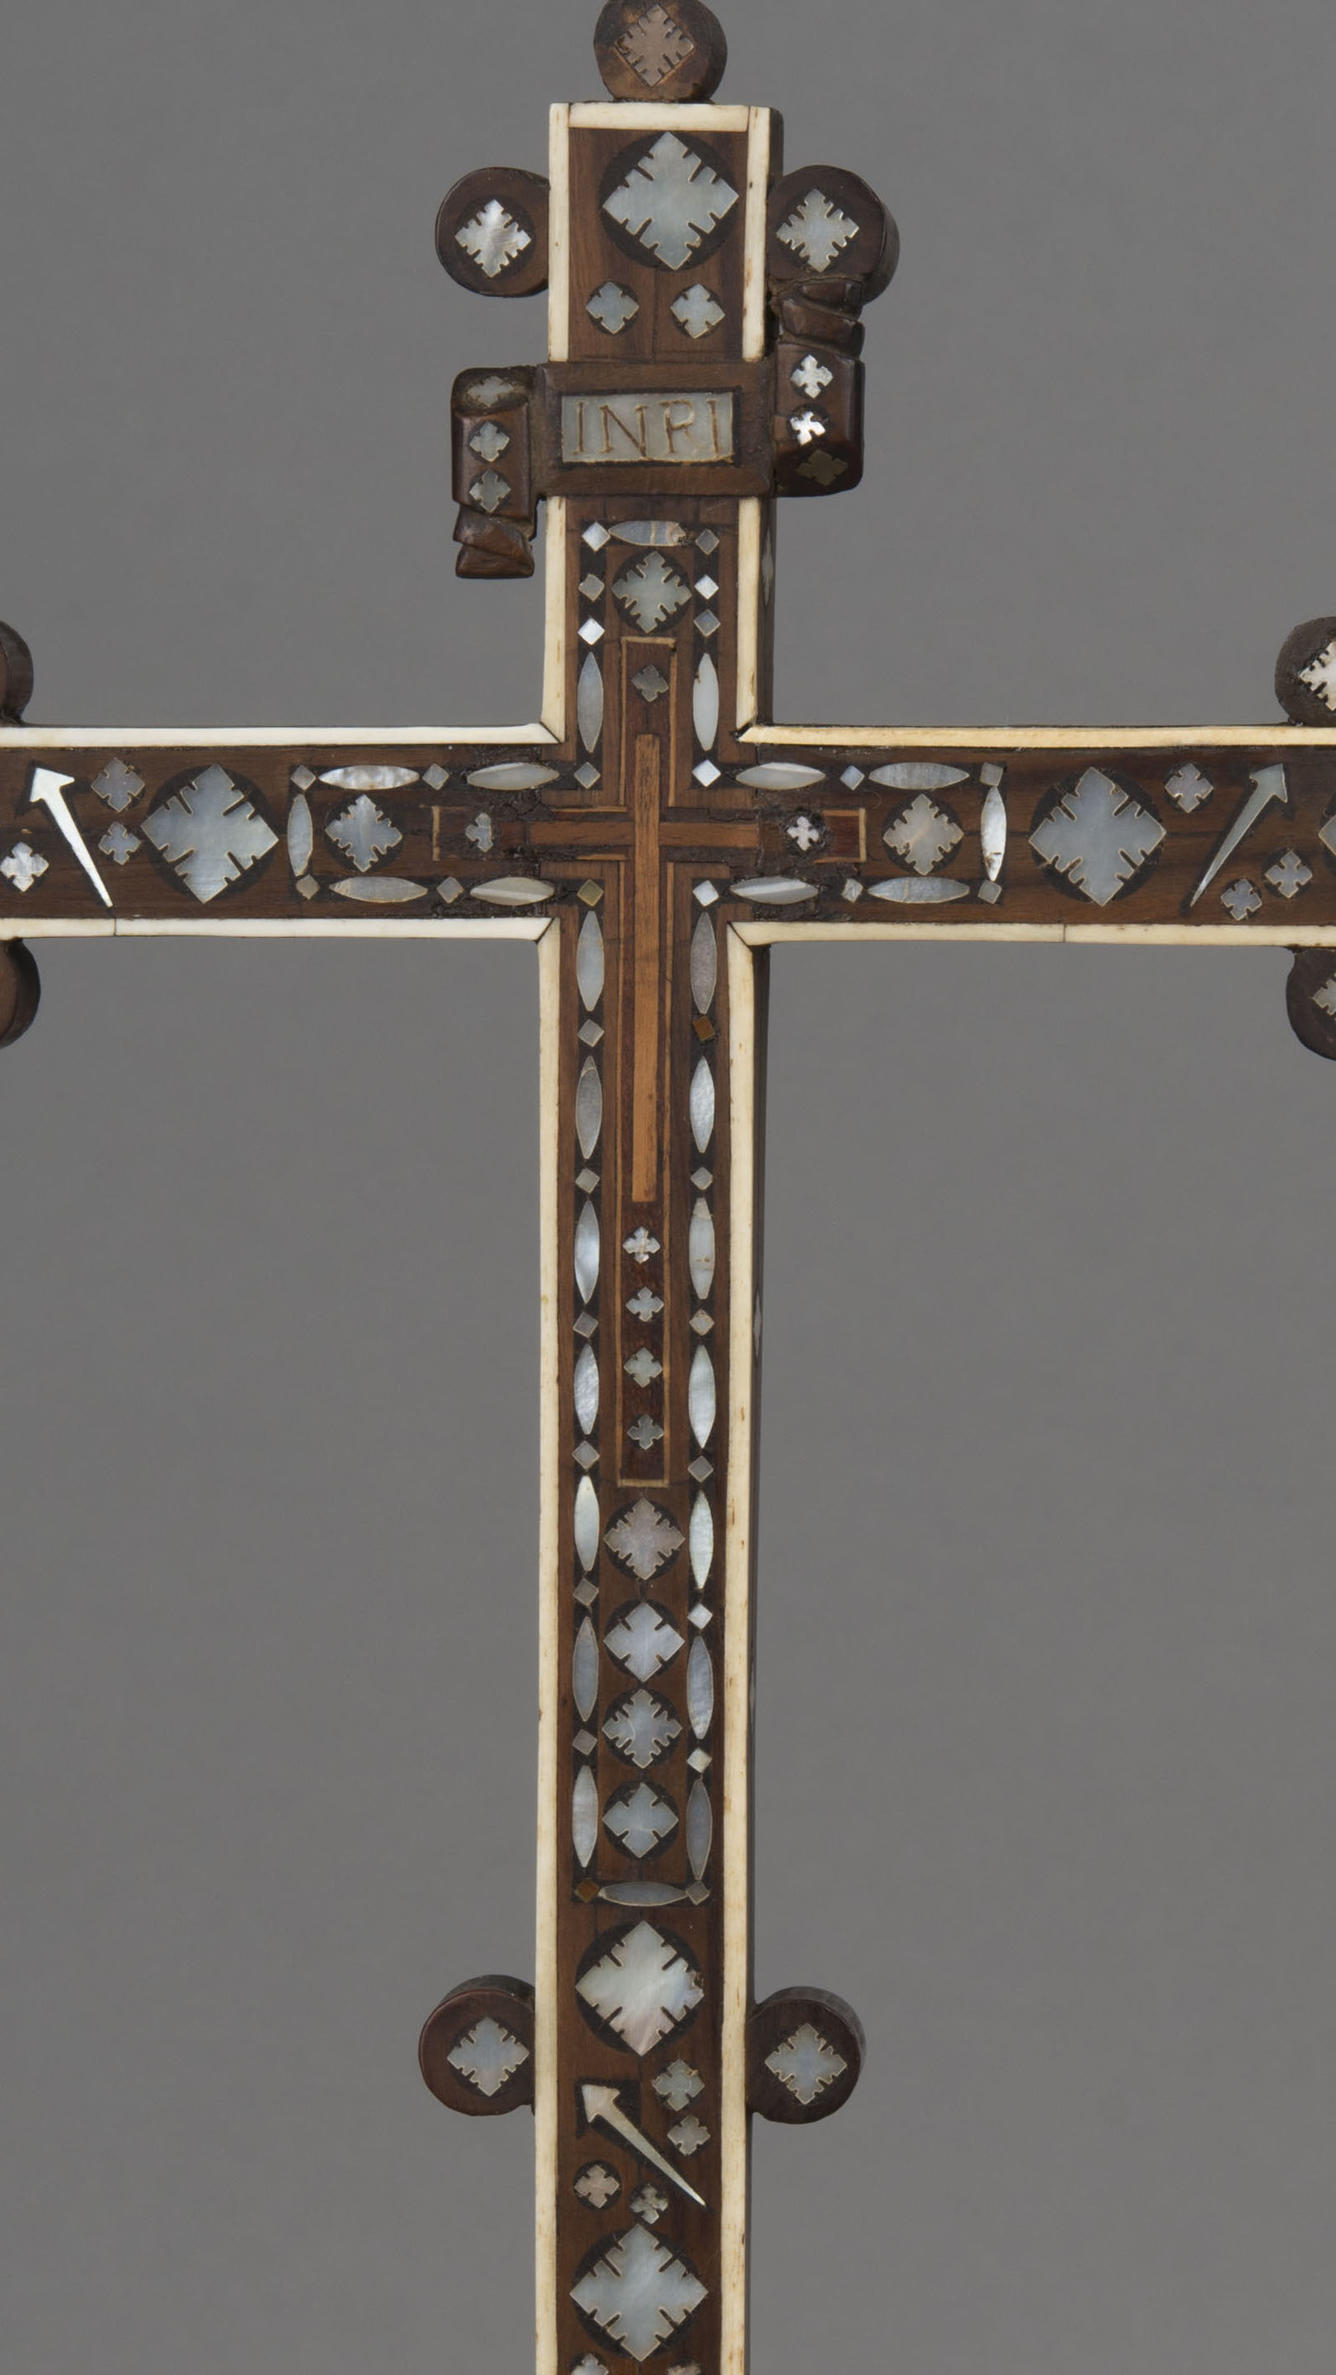 Italian, Venice, Cross, 17th century, showing a detail of the three nails